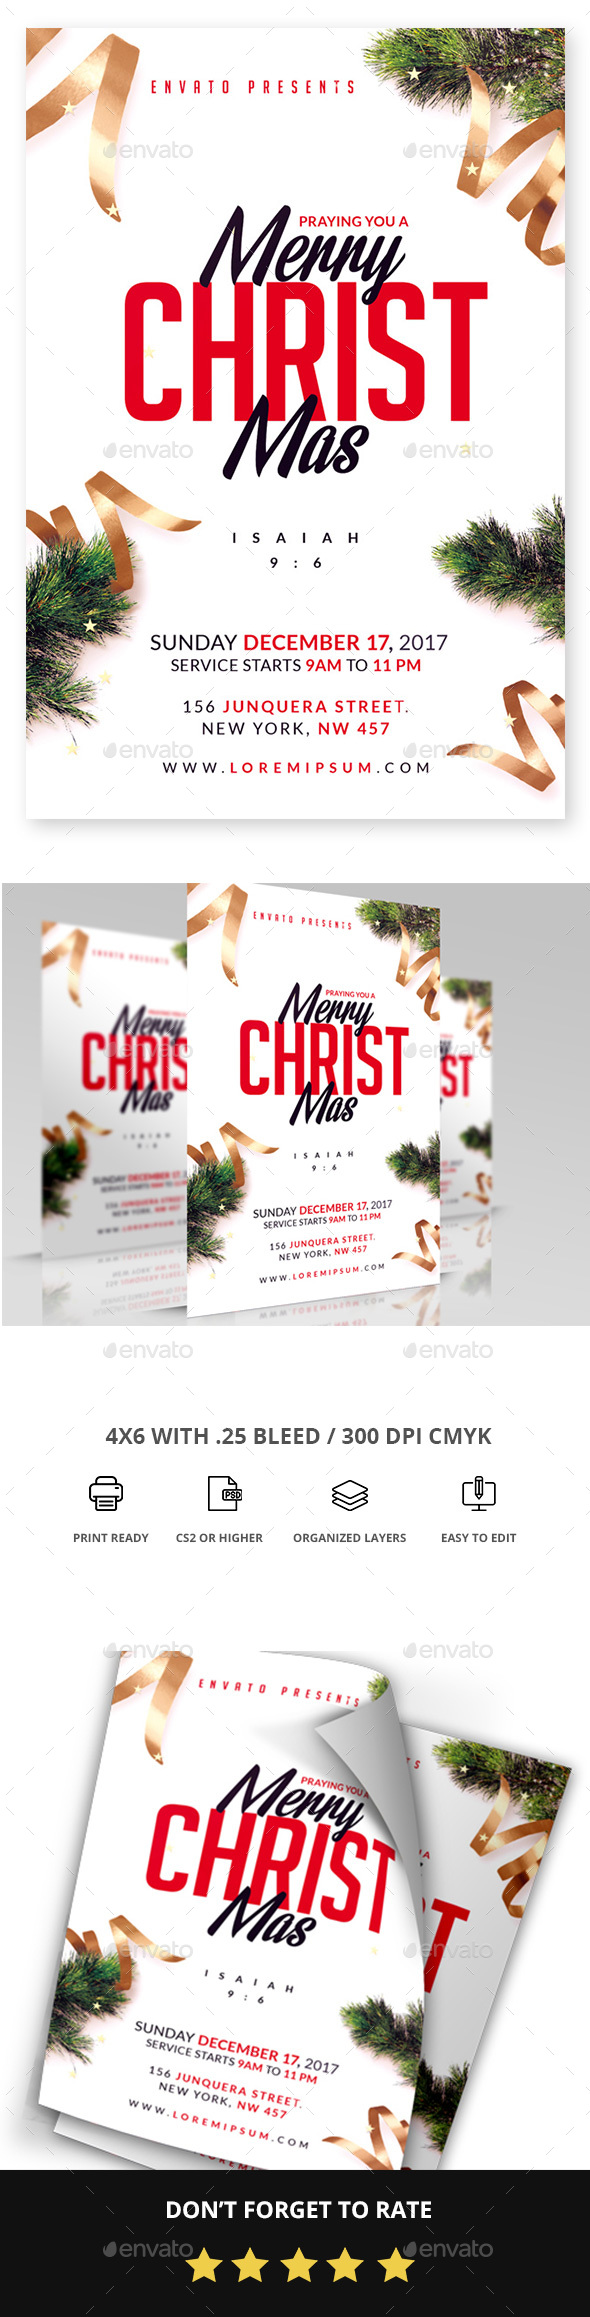 Christmas - Church Flyers